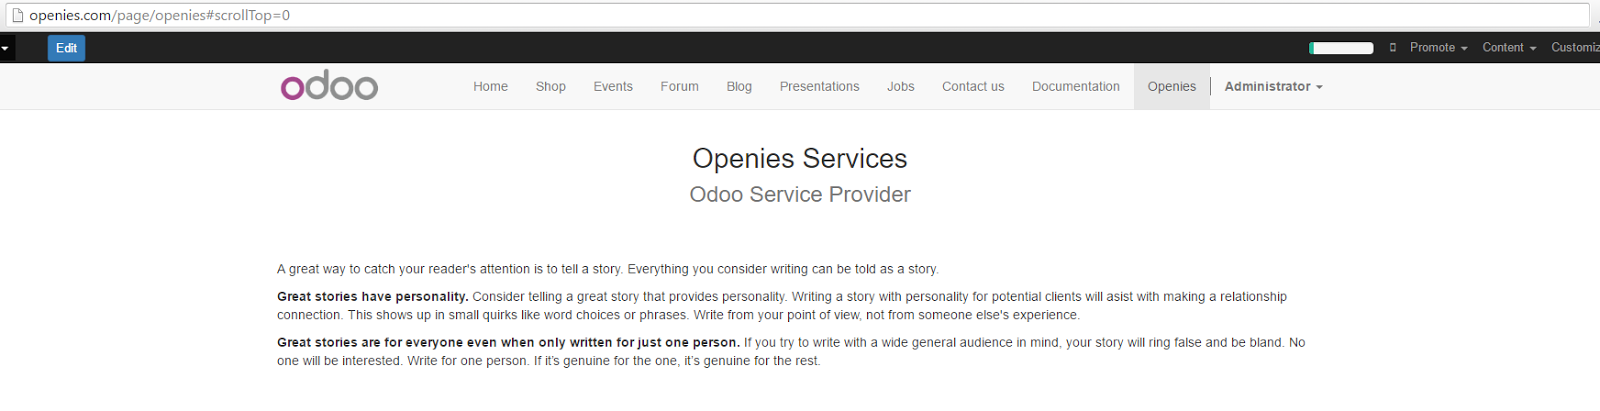 openies_odoo_page